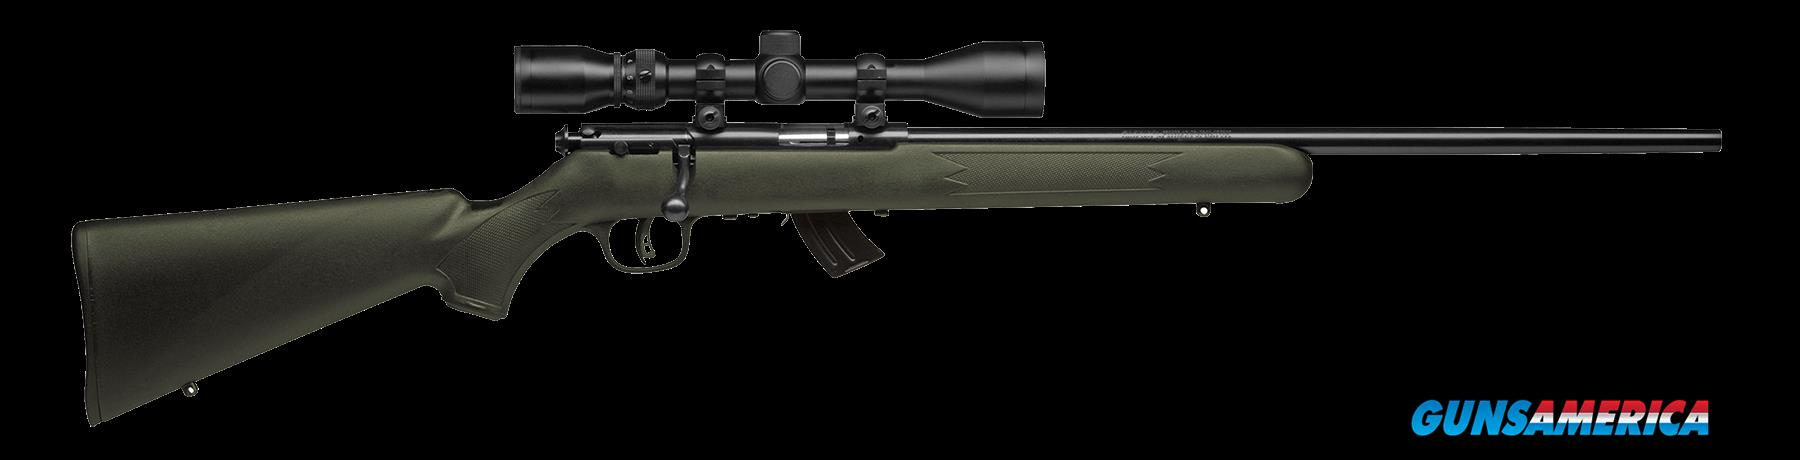 "Savage 26721 Mark II FXP with Scope Bolt 22 Long Rifle 21"" 5+1 Synthetic OD Green Stk Black  Guns > Rifles > S Misc Rifles"